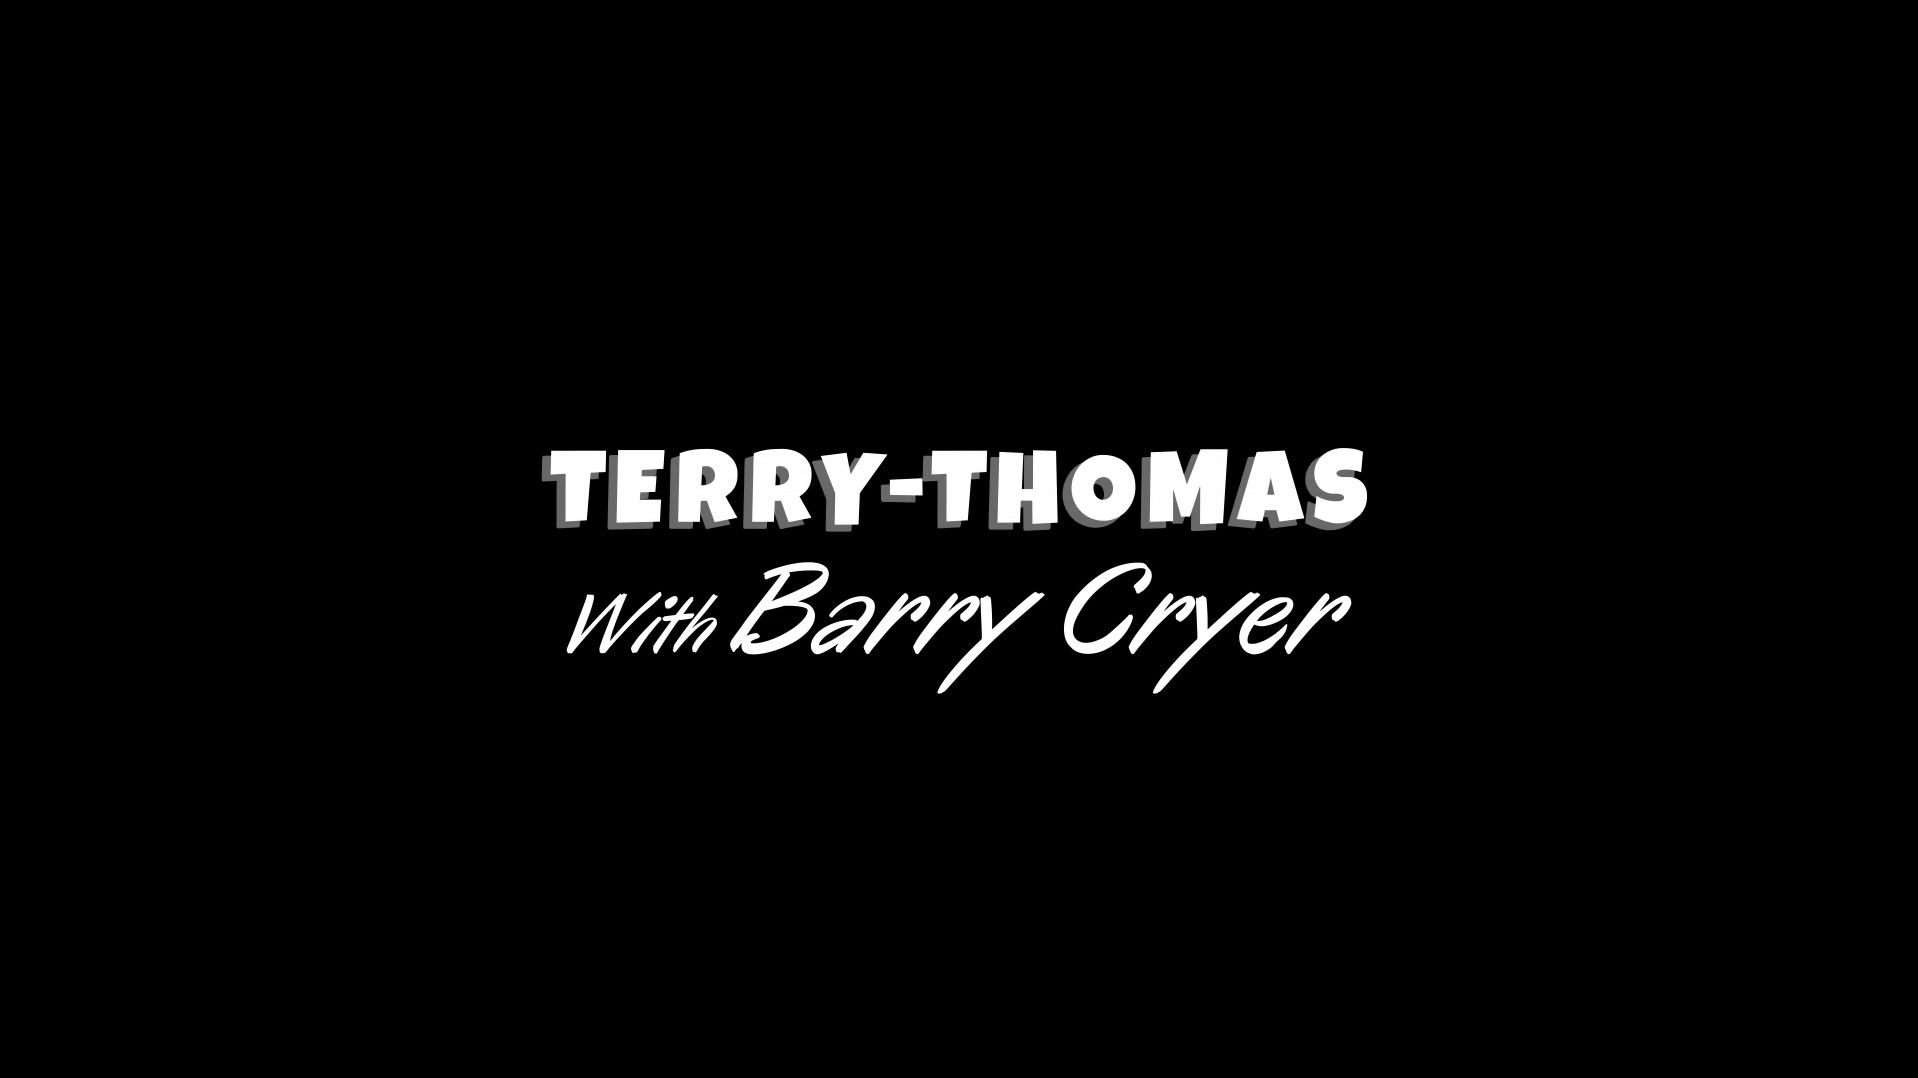 Main title from the 'Terry-Thomas' episode of Comedy Legends (2)